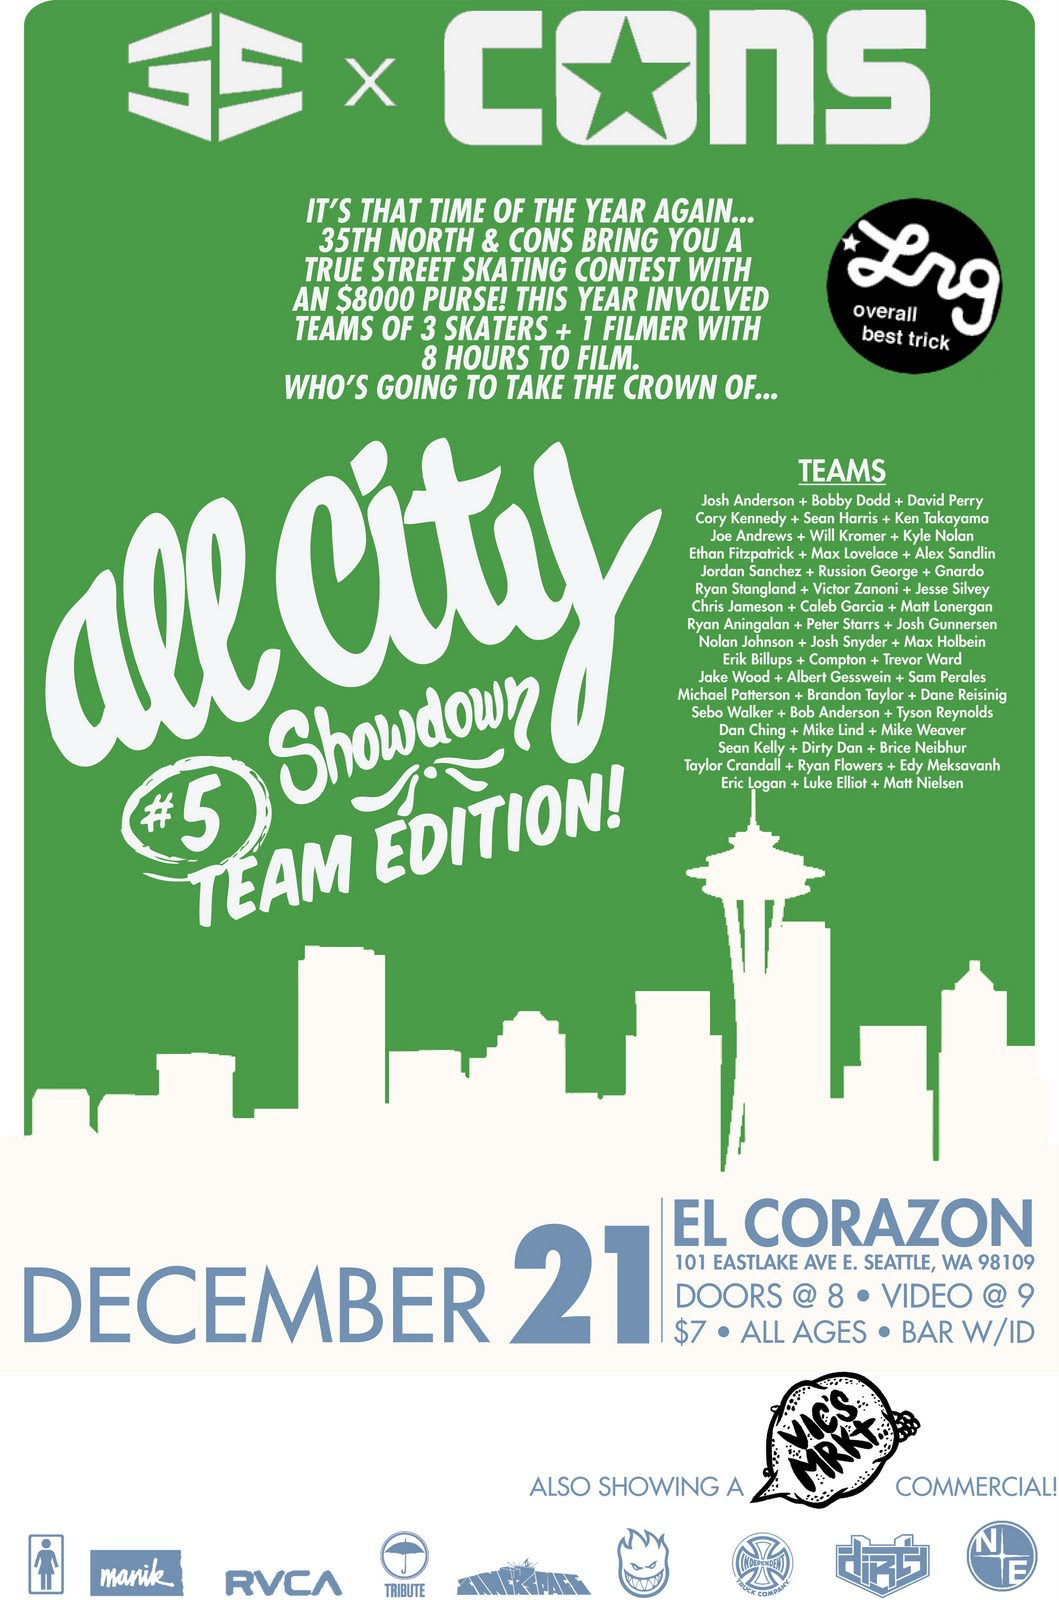 All City Showdown #5 -Team Edition - Seattle